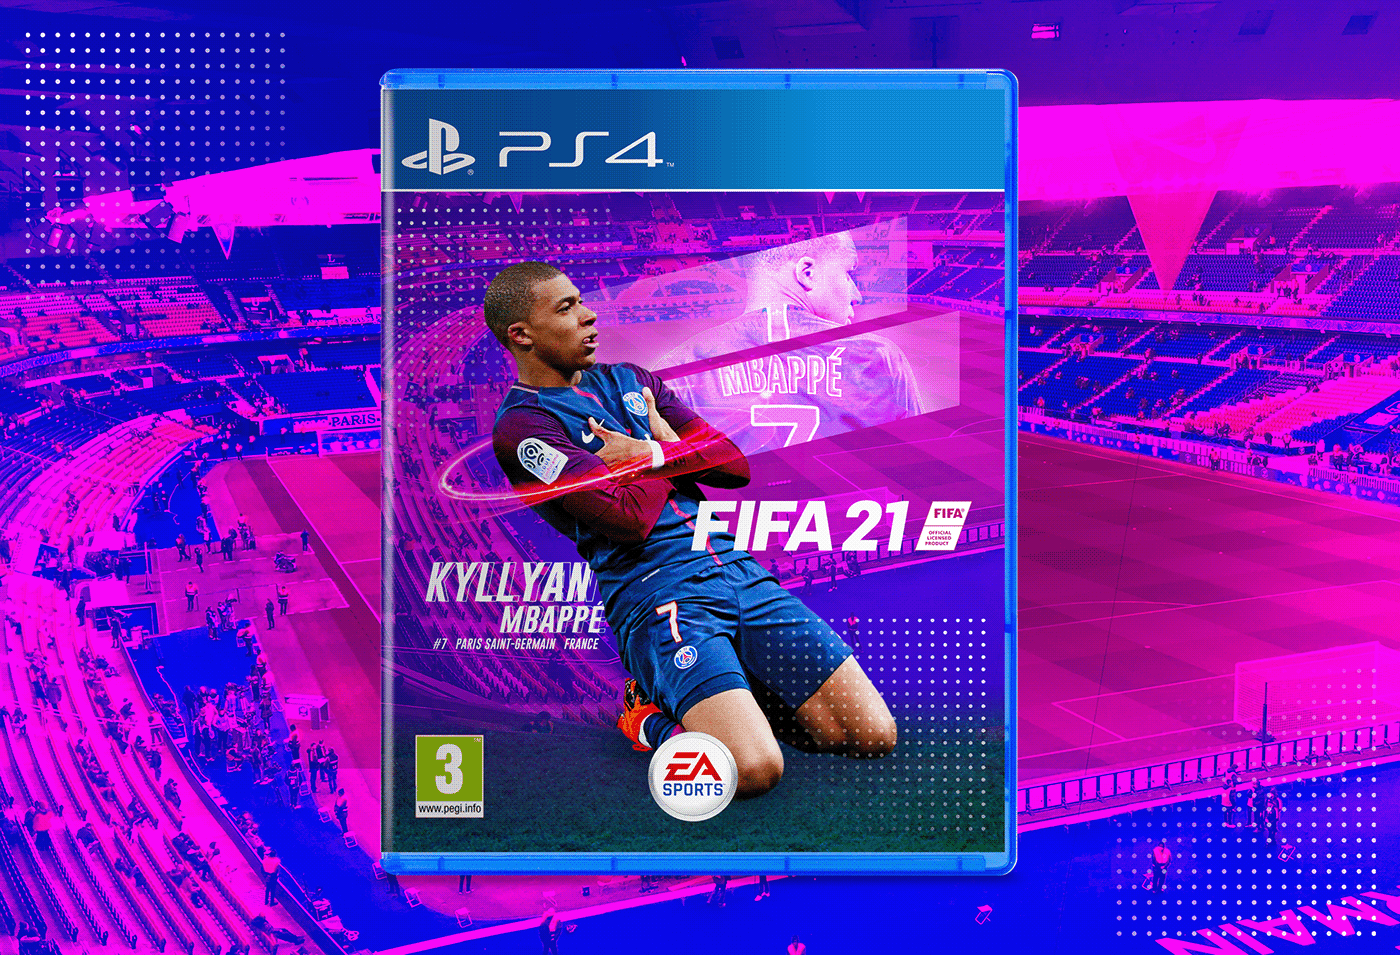 FIFA 21 | Cover Art Concepts on Behance